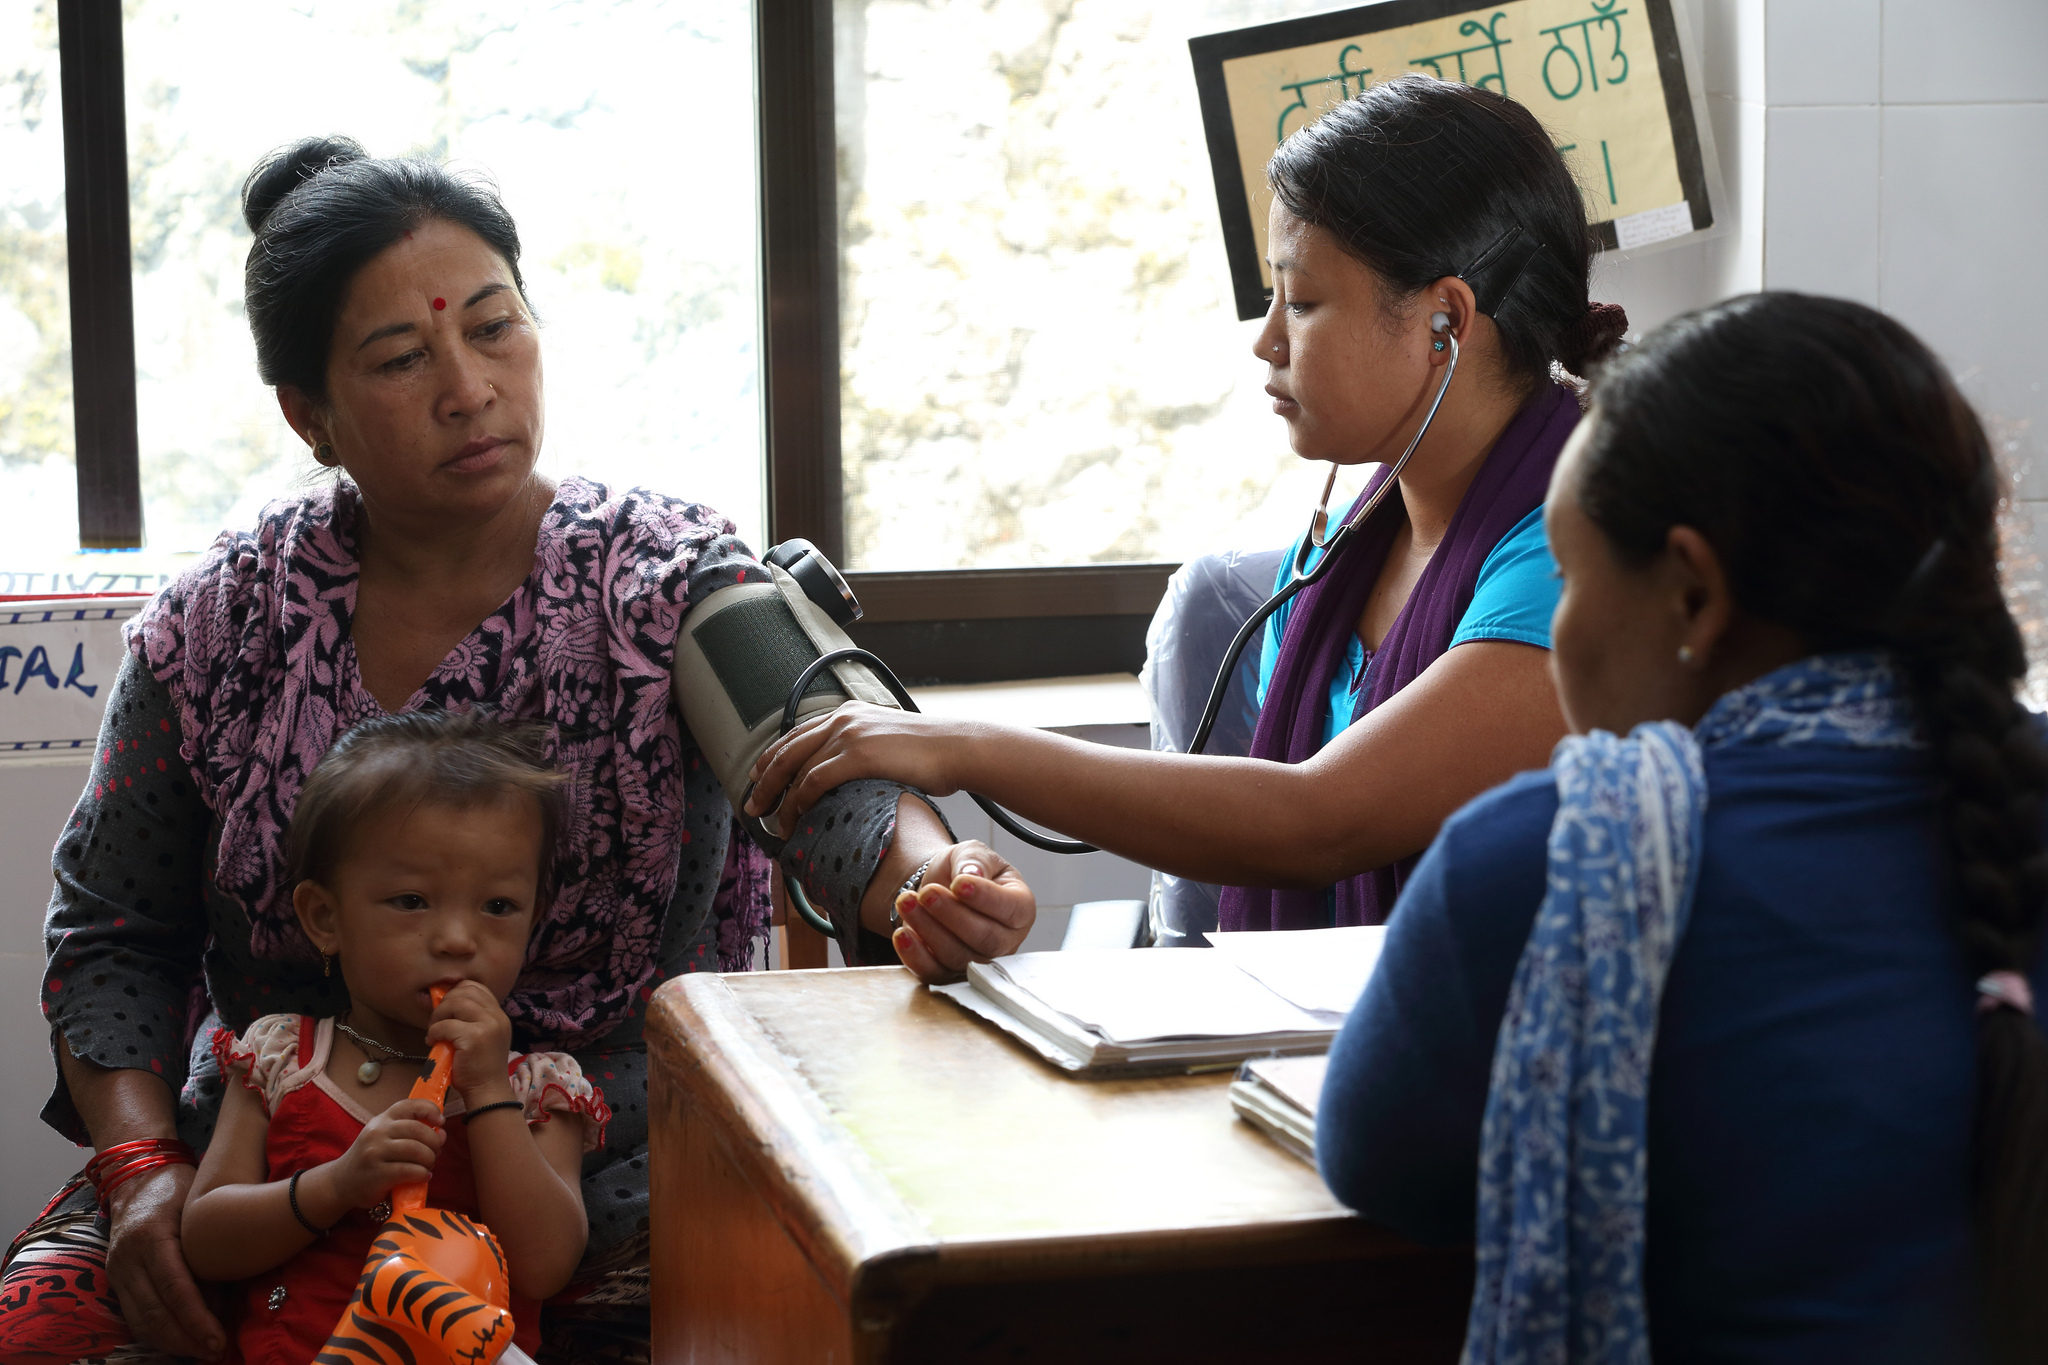 Devi Gurung has a health check at a new clinic in Pokhara, Nepal Photo by Jim Holmes for DFAT